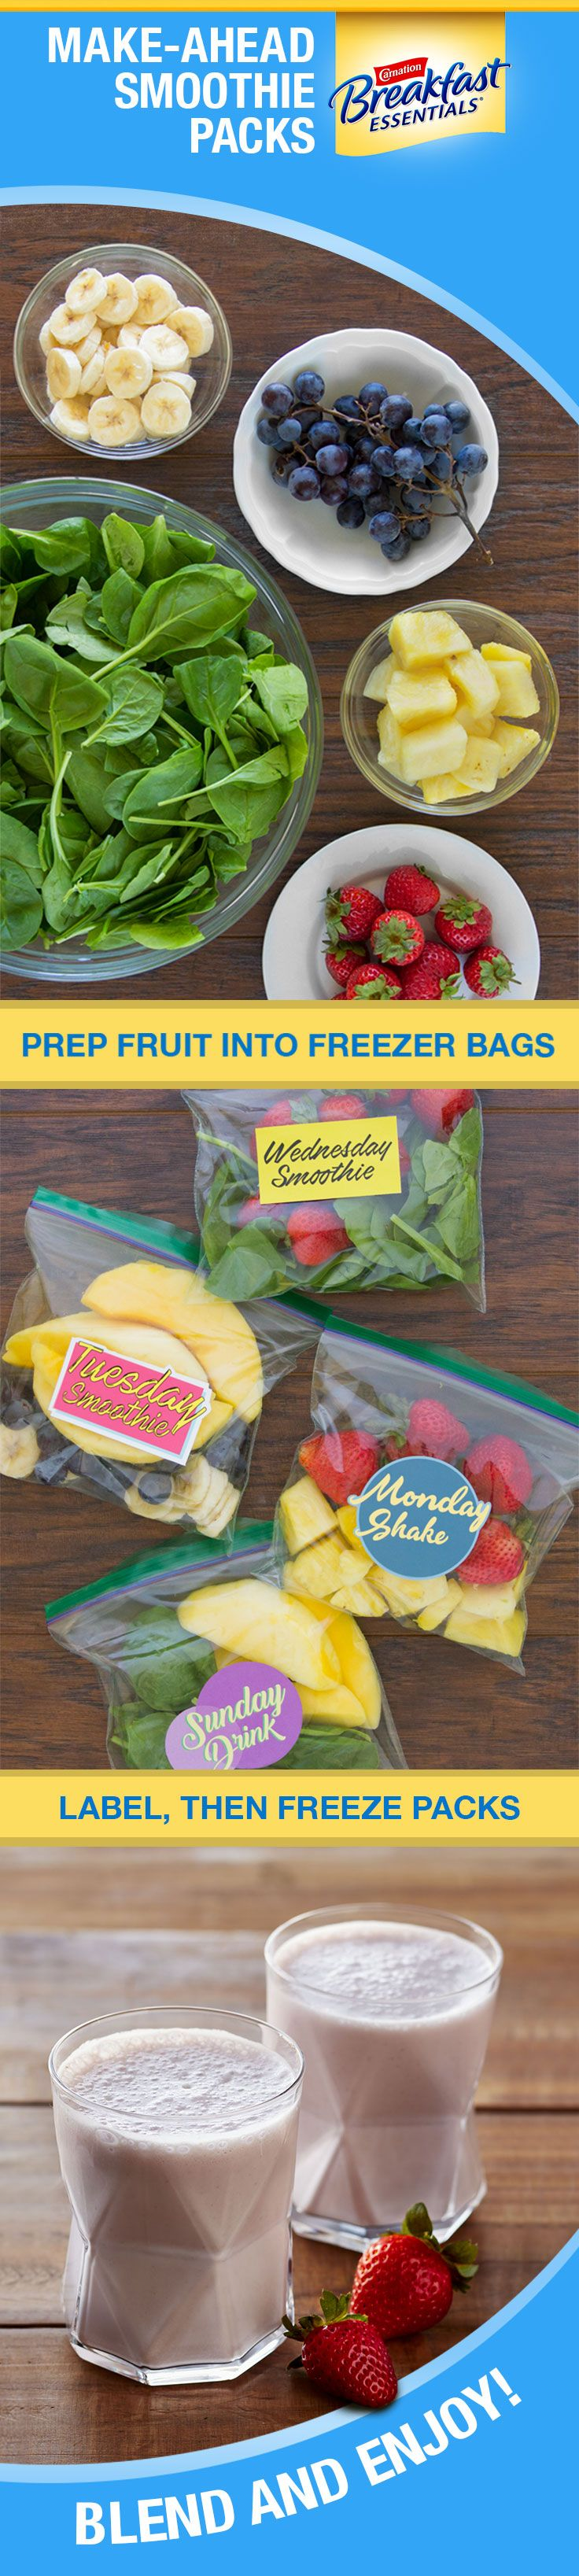 Shave a few minutes off your mornings by meal prepping some smoothie packs to store in your freezer. Label and pre-portion the ingredients of your favorite recipes into a freezer baggie. When you want a smoothie, all you have to do is empty the bag and add your choice of milk and a packet of Carnation Breakfast Essentials® powder drink mix in a blender and blend. Freezing them also makes smoothies richer and creamier. With protein, vitamins and minerals, it's a nutritious start to your day.